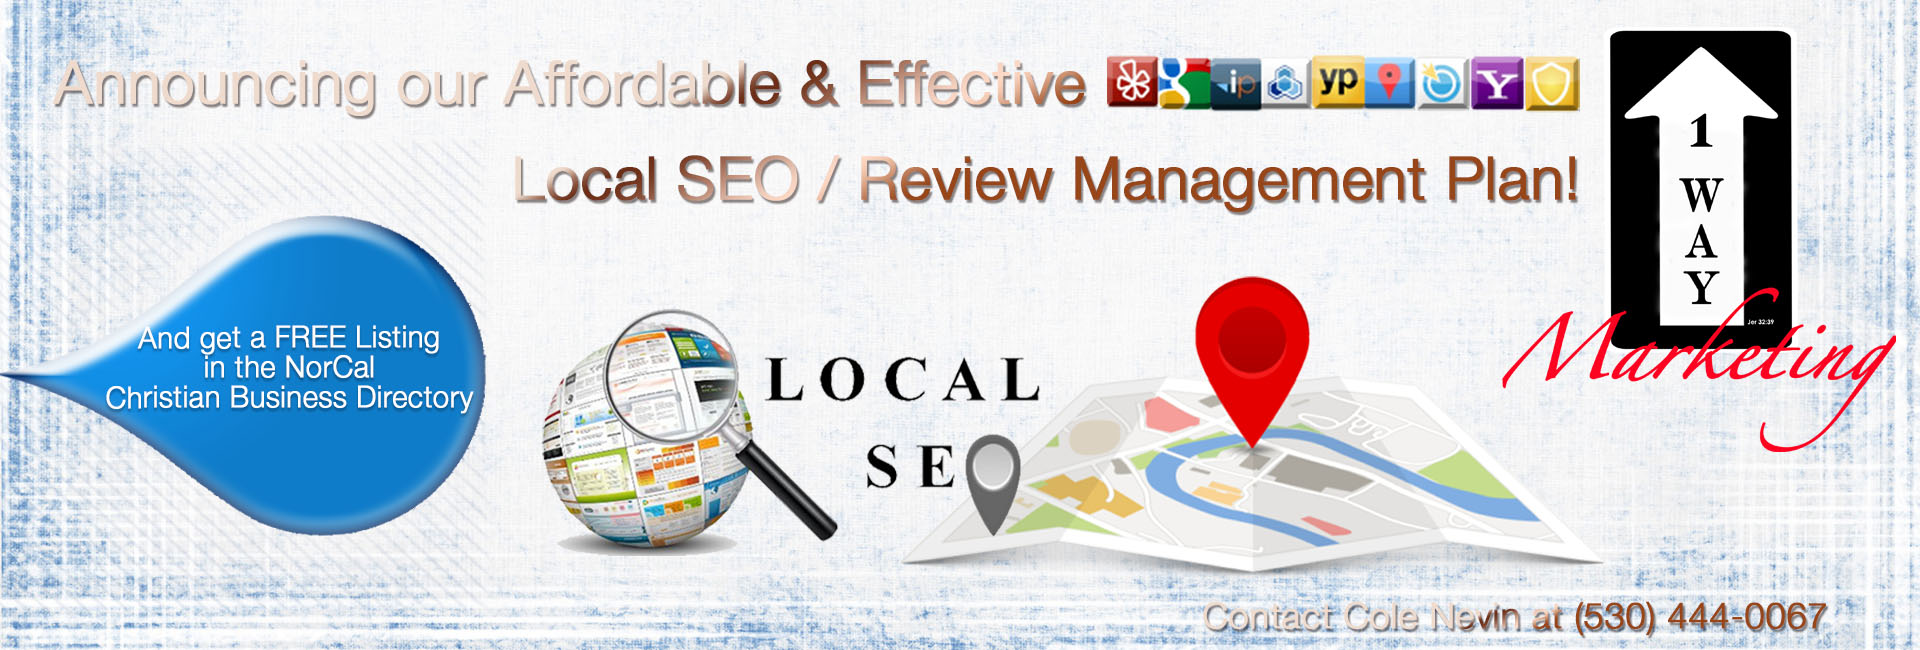 1 Way seo plan